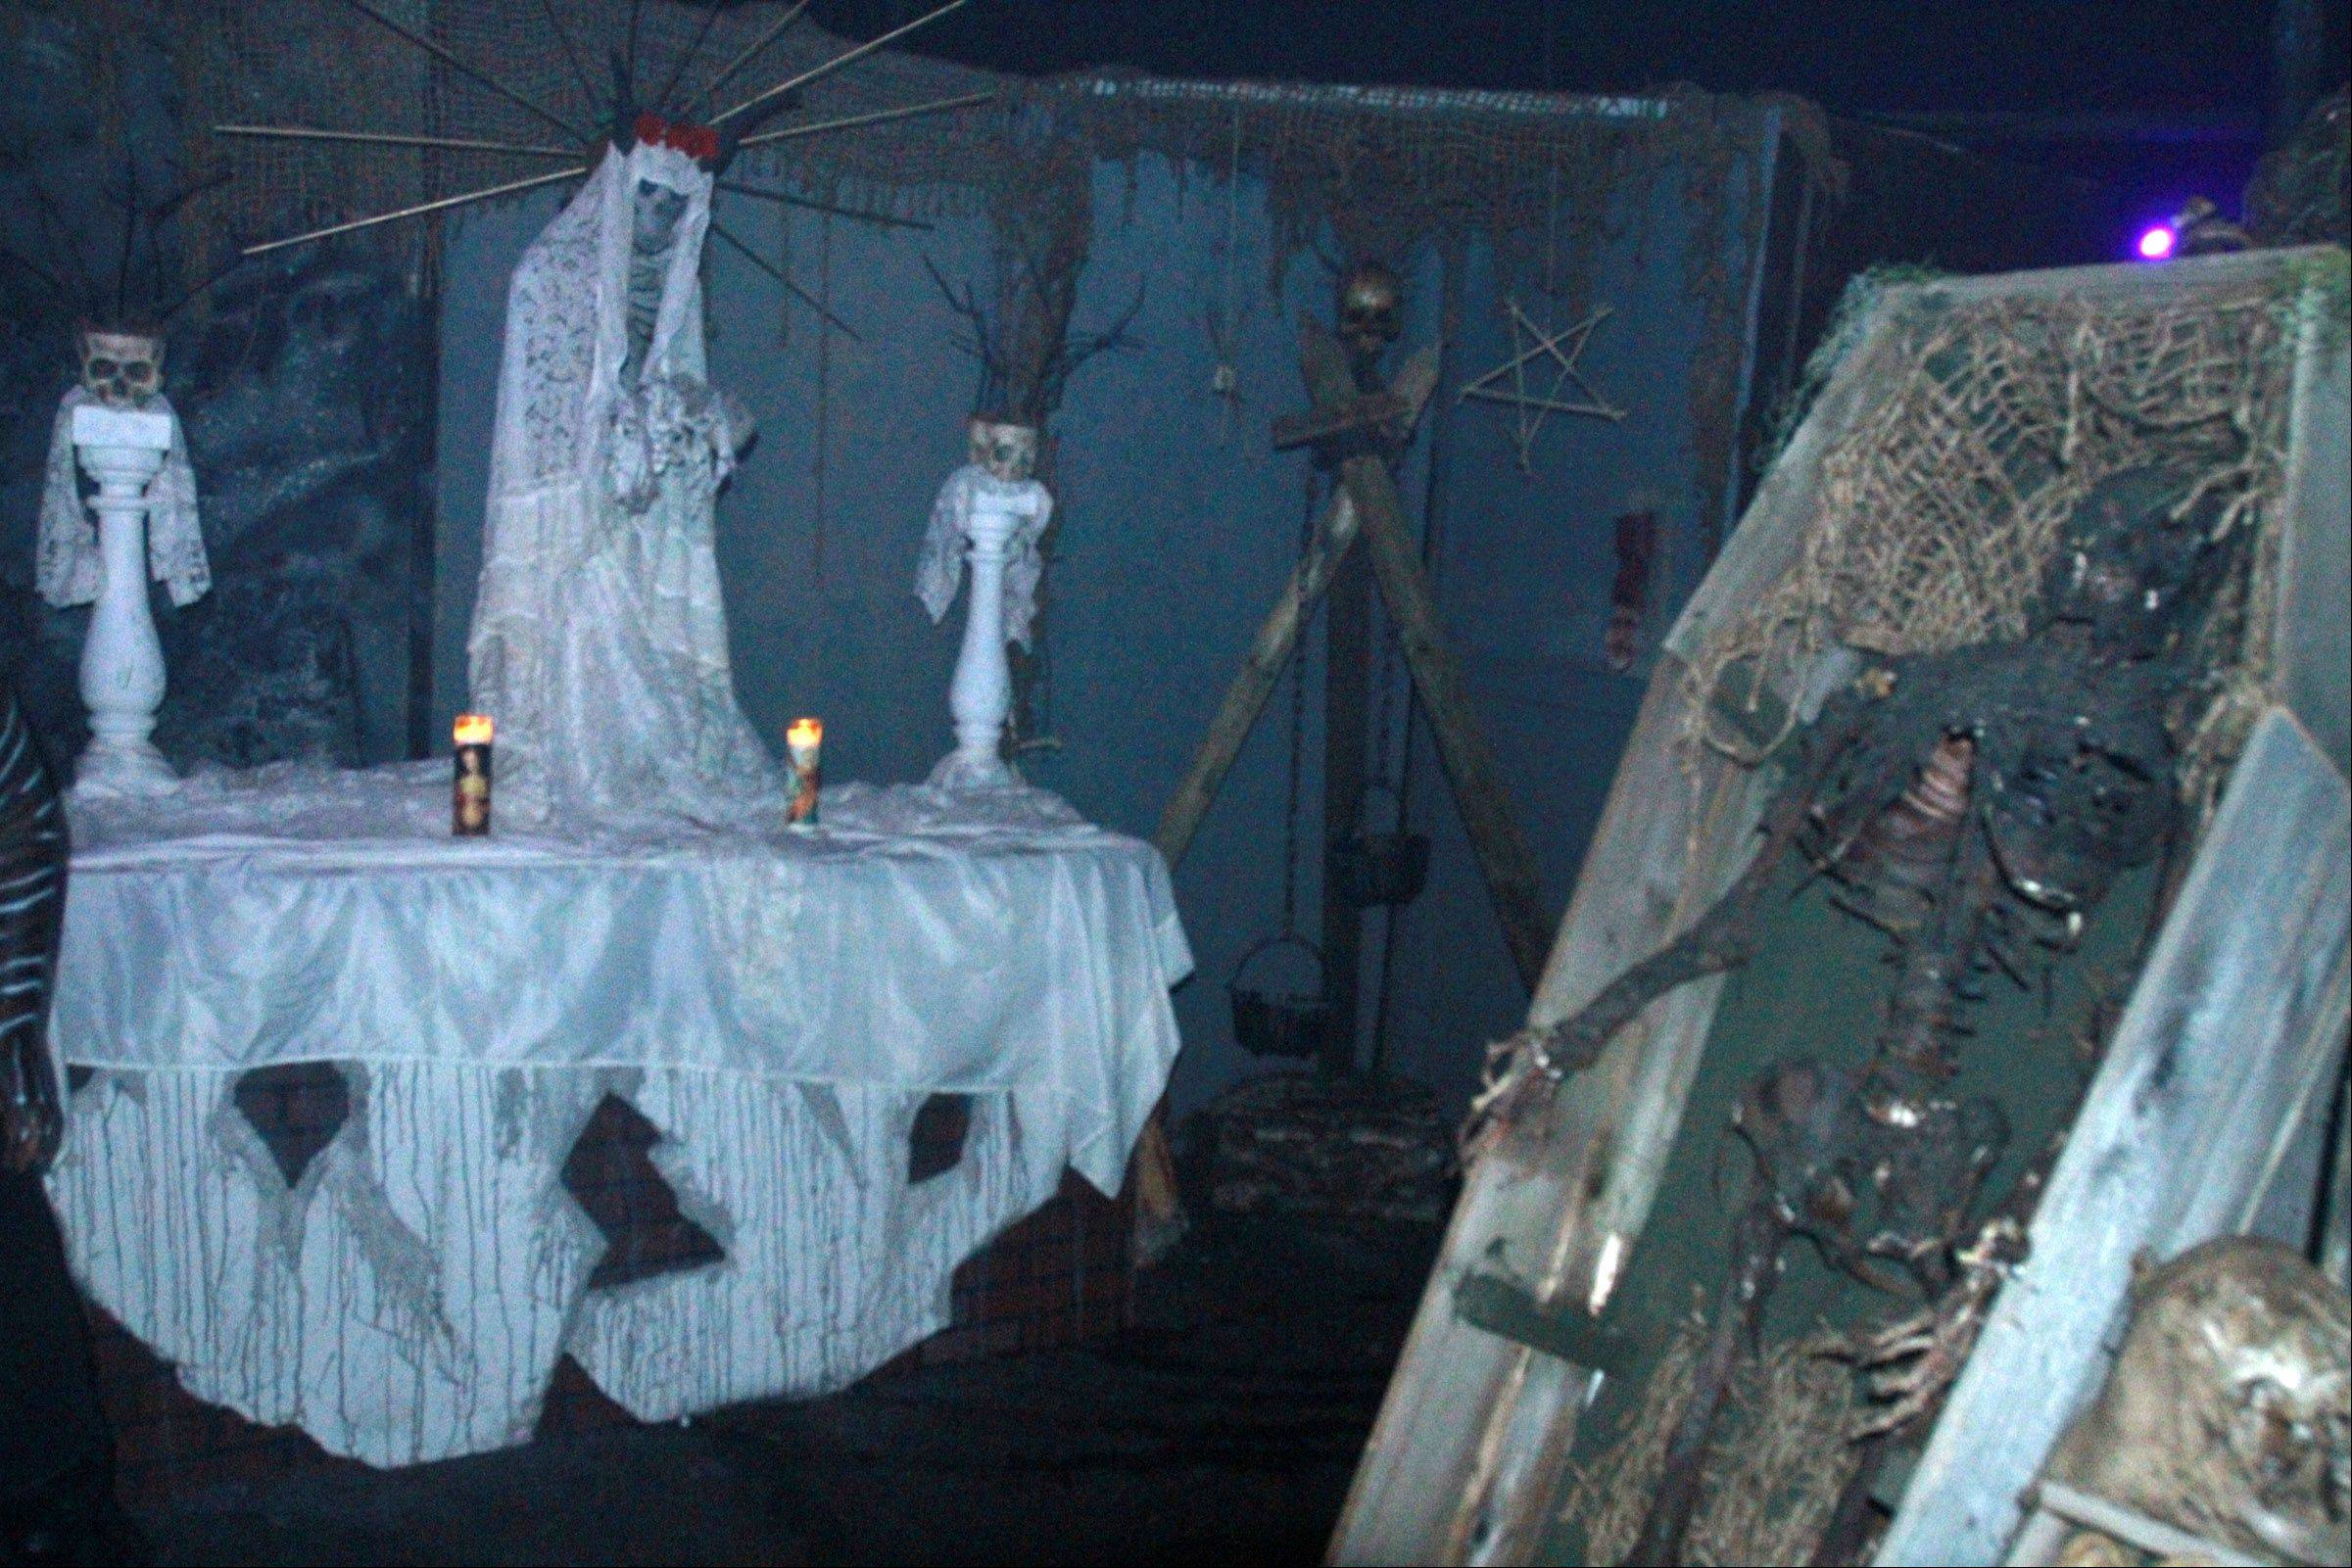 The suburbs' newest haunted attraction is CarnEvil at the Sears Centre in Hoffman Estates.